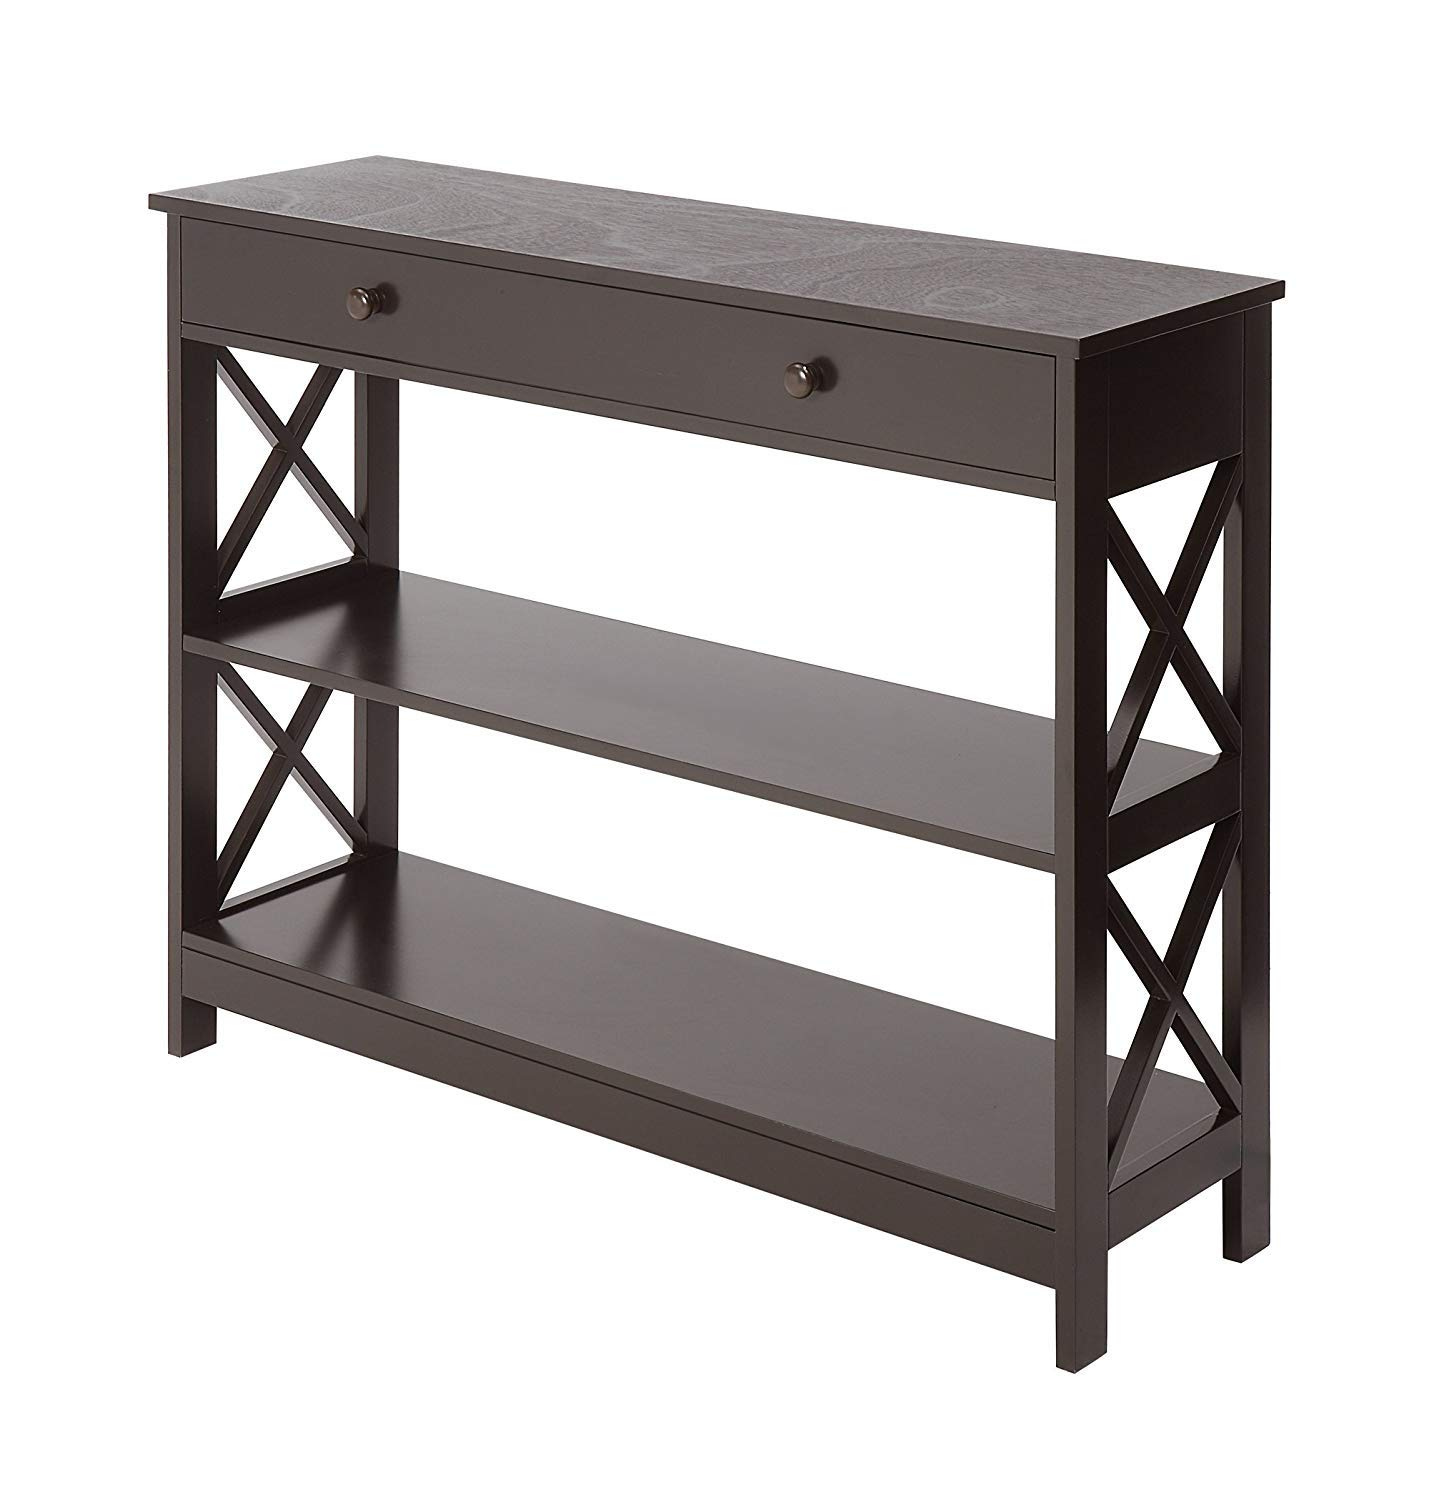 Convenience Concepts Oxford 1-Drawer Console Table, Espresso